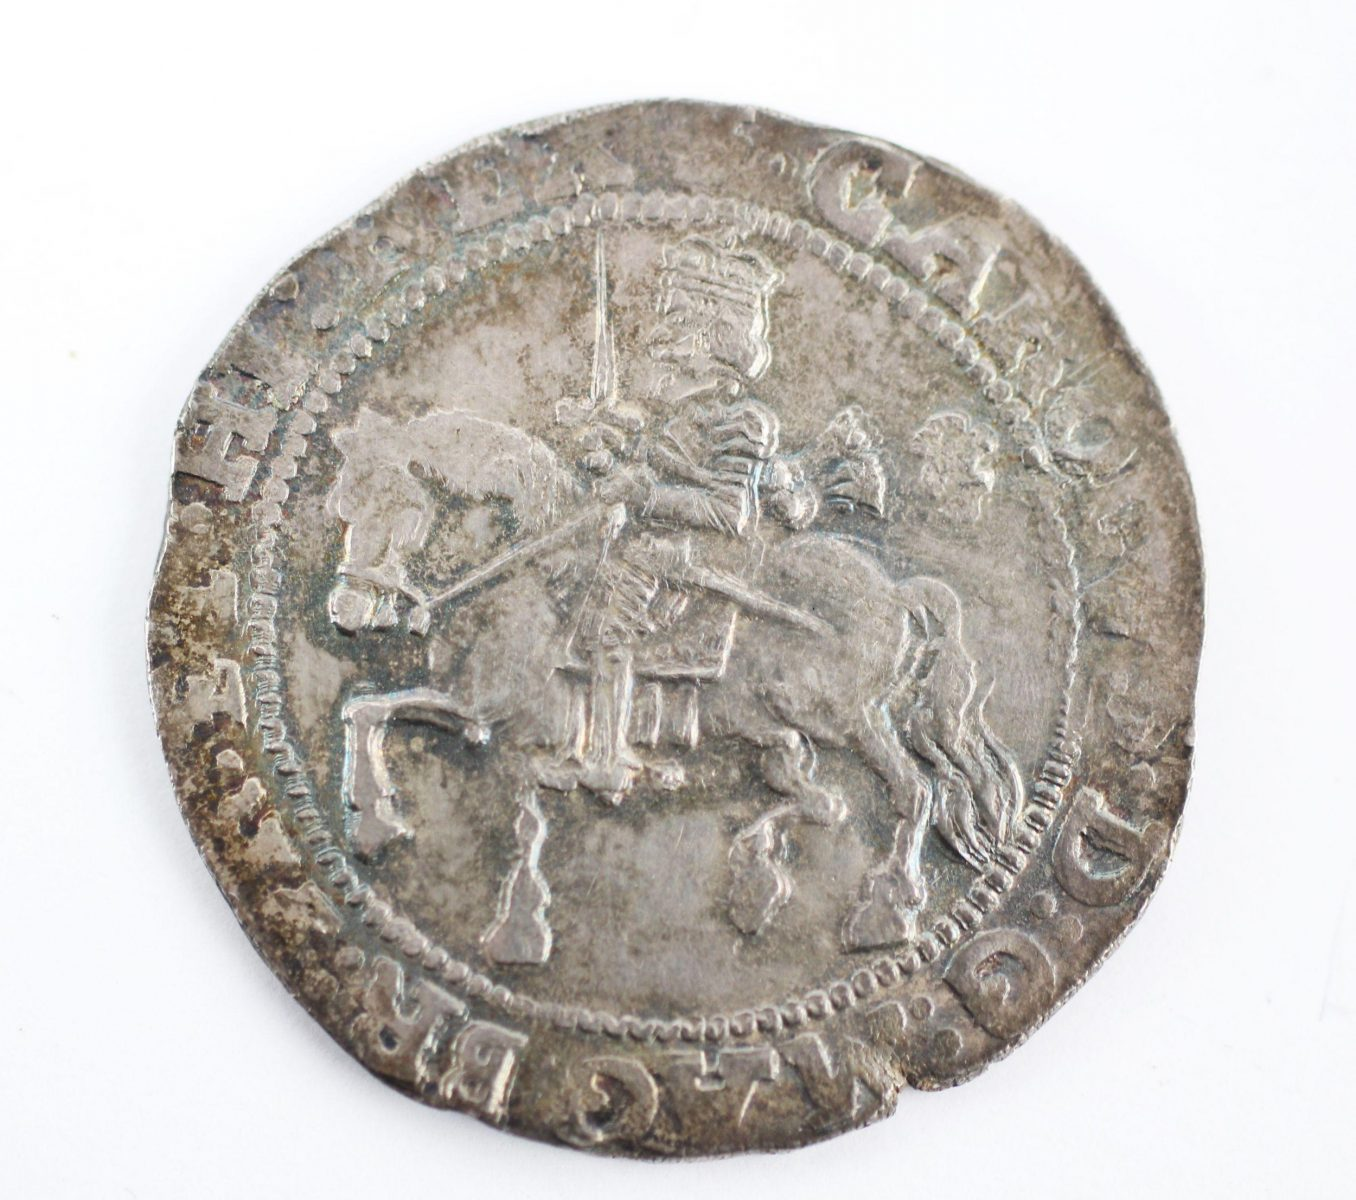 6. A collection of early British coins SOLD for £4,500 - May 2018